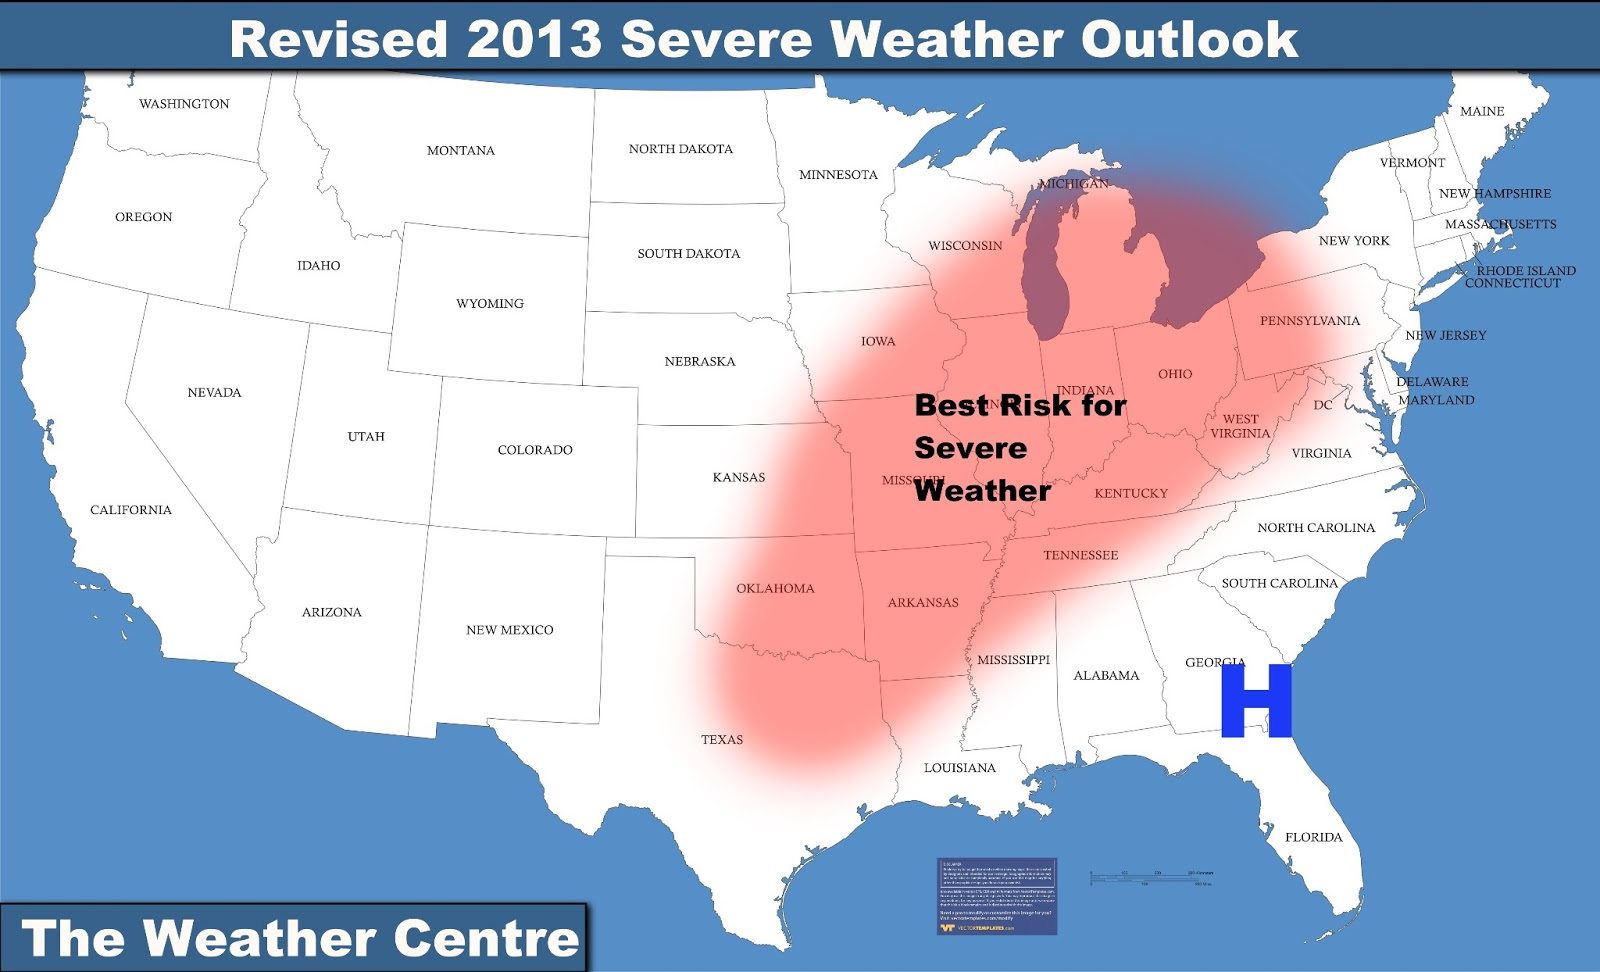 /2013/02/02/severe-weather-season-is-revised-the-spring-outlook-2013